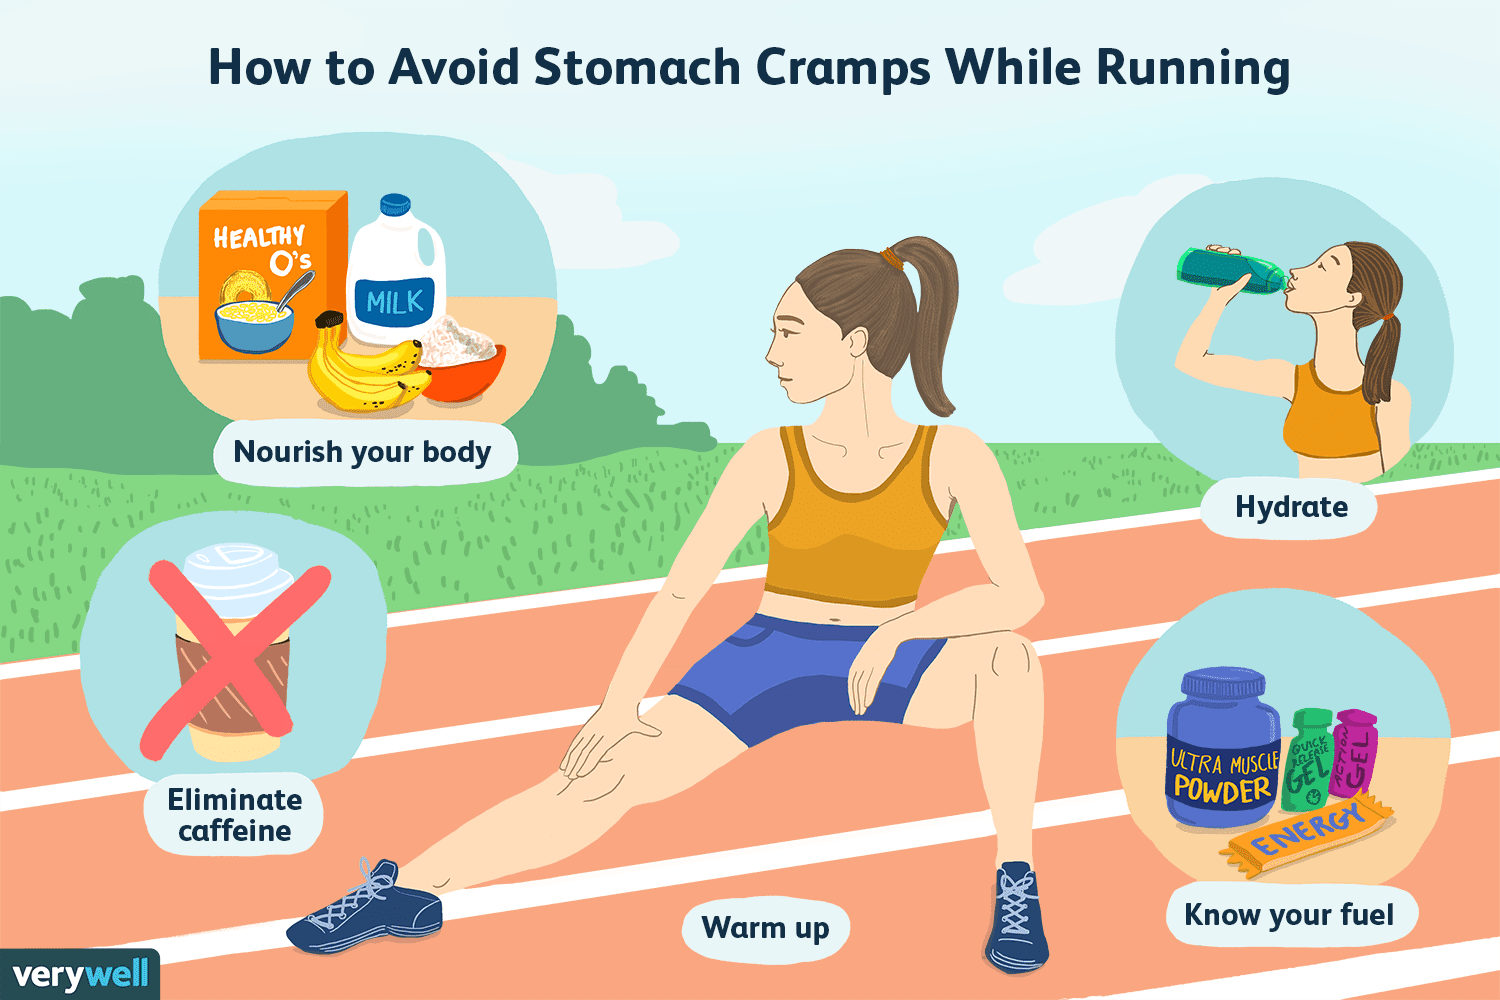 15 Tips to Avoid Stomach Cramps When Running